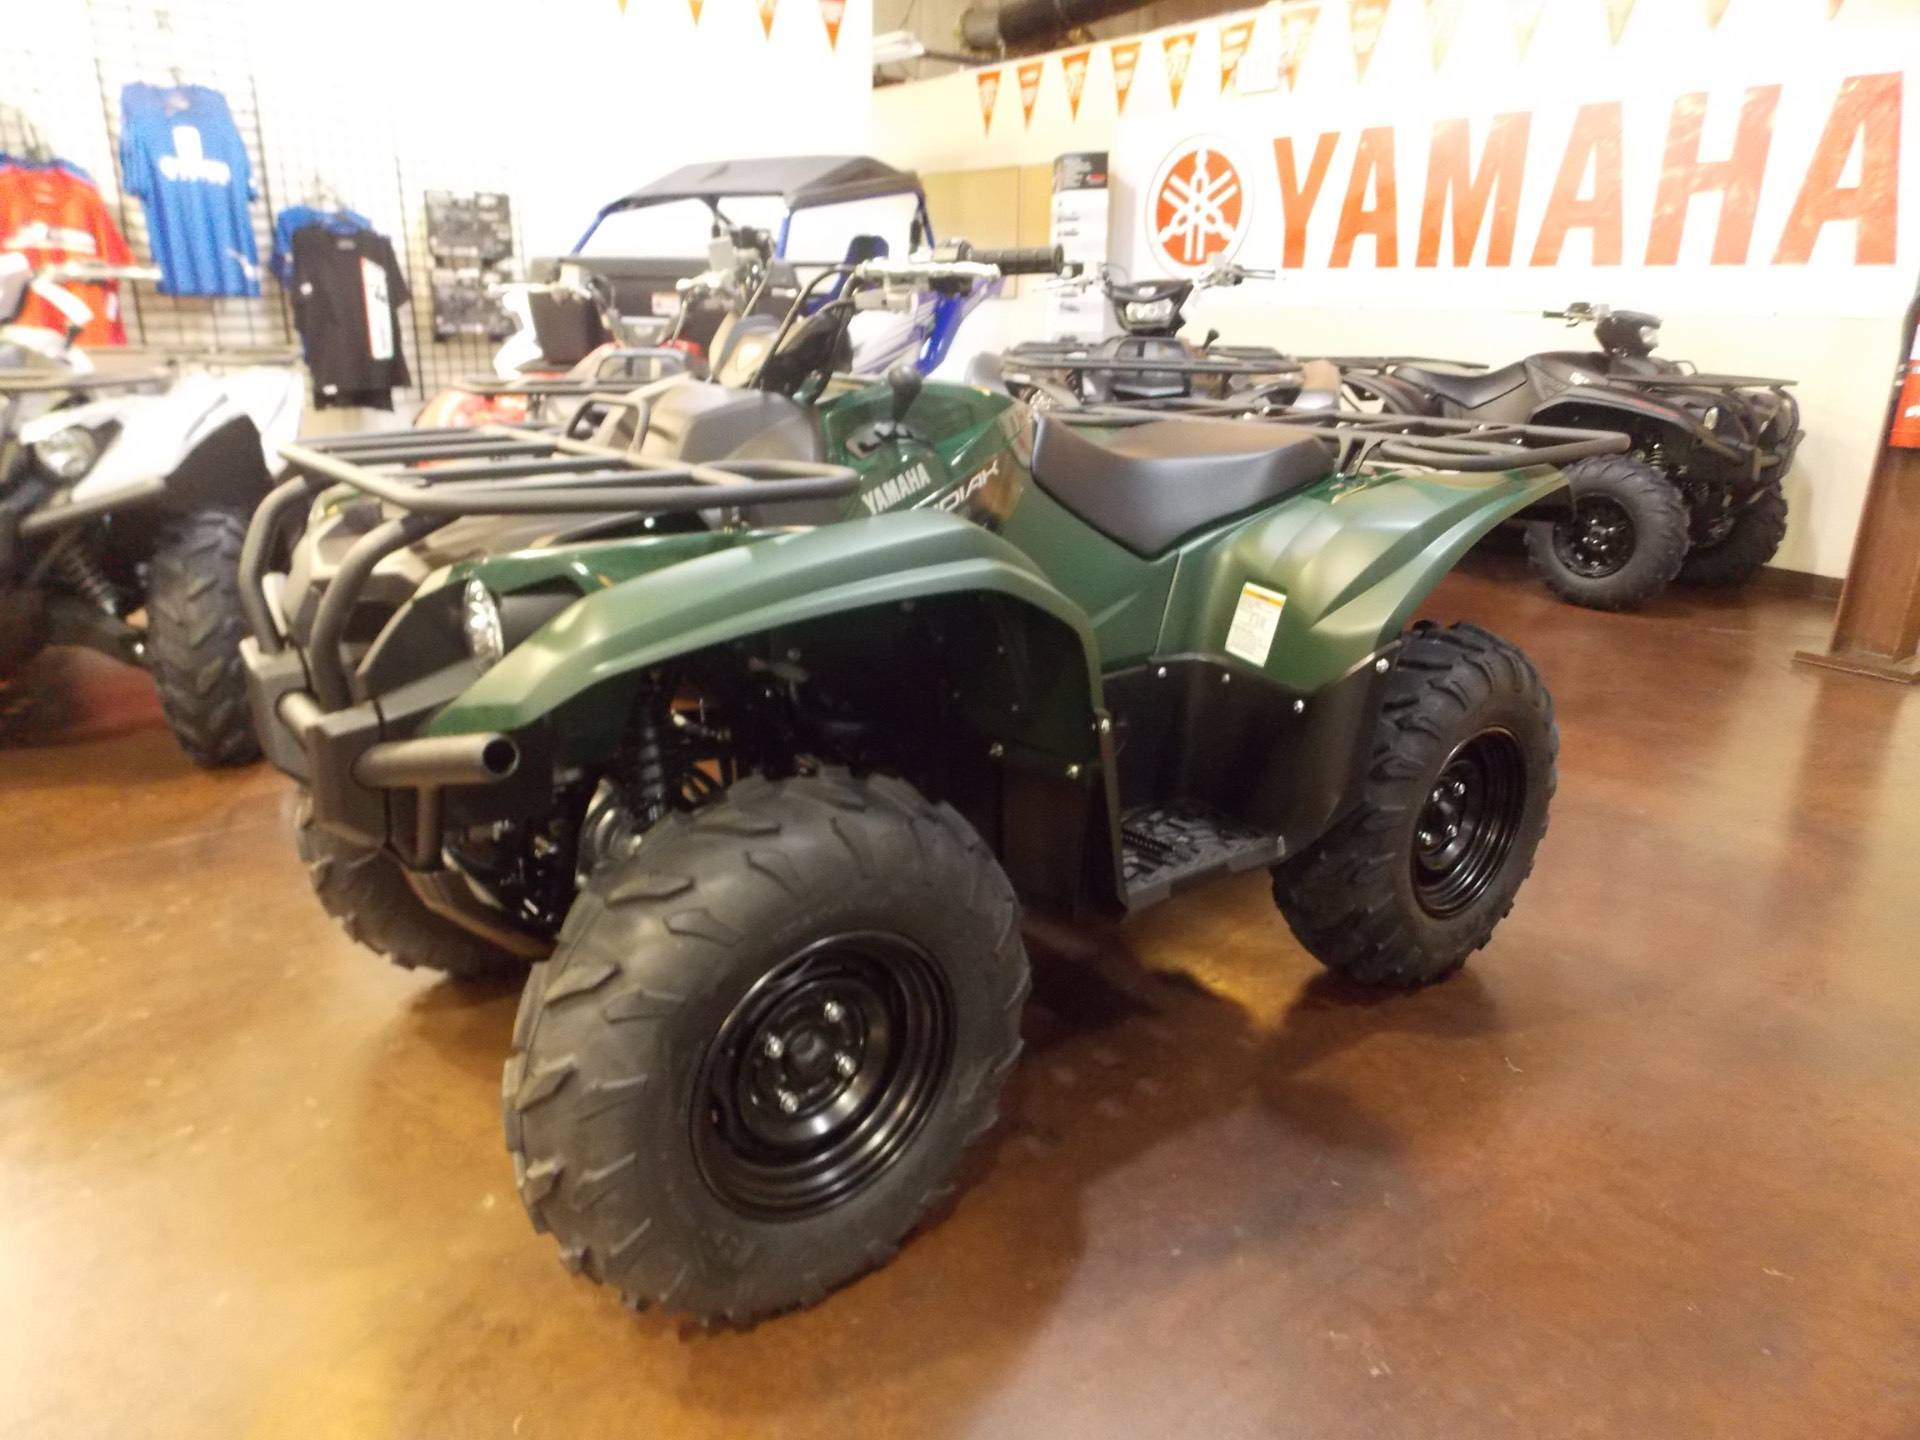 New 2018 yamaha kodiak 700 atvs in statesville nc stock for Yamaha kodiak 700 review